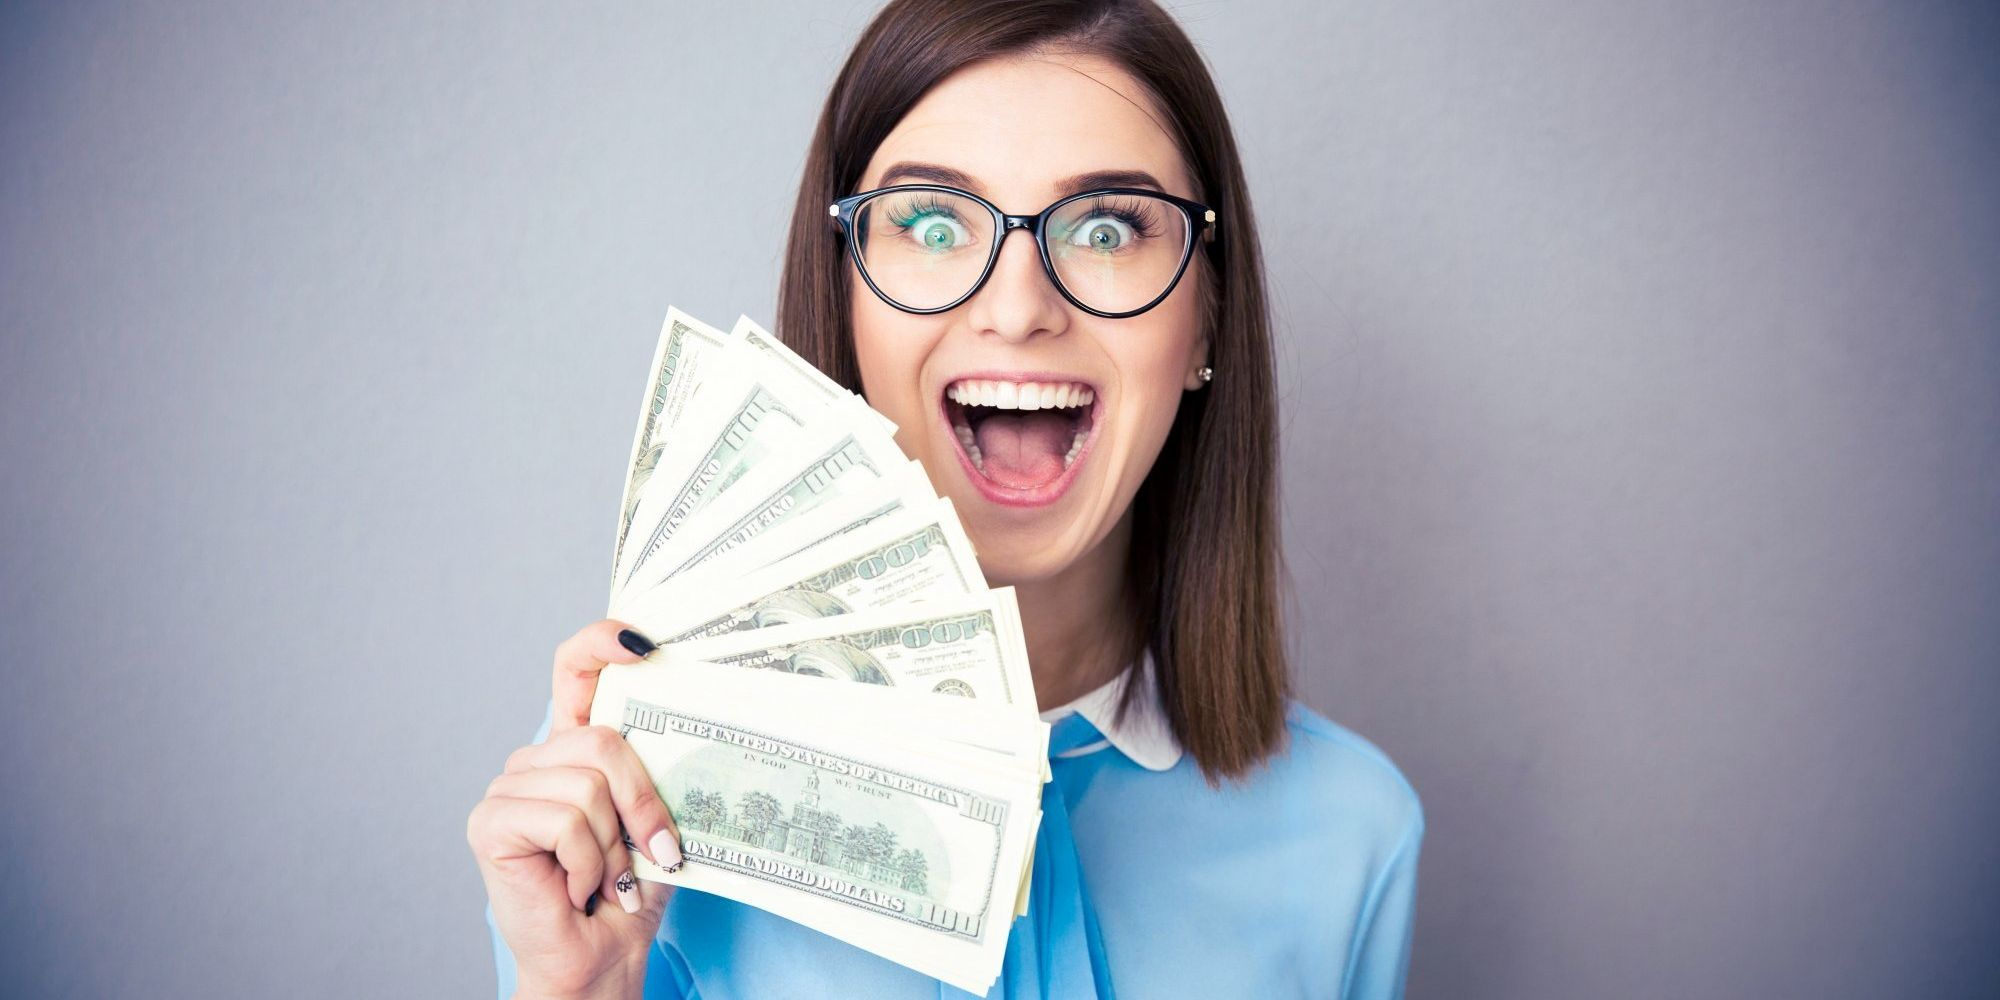 how to get a raise out asking for one squib huffington post how to get a raise out asking for one squib